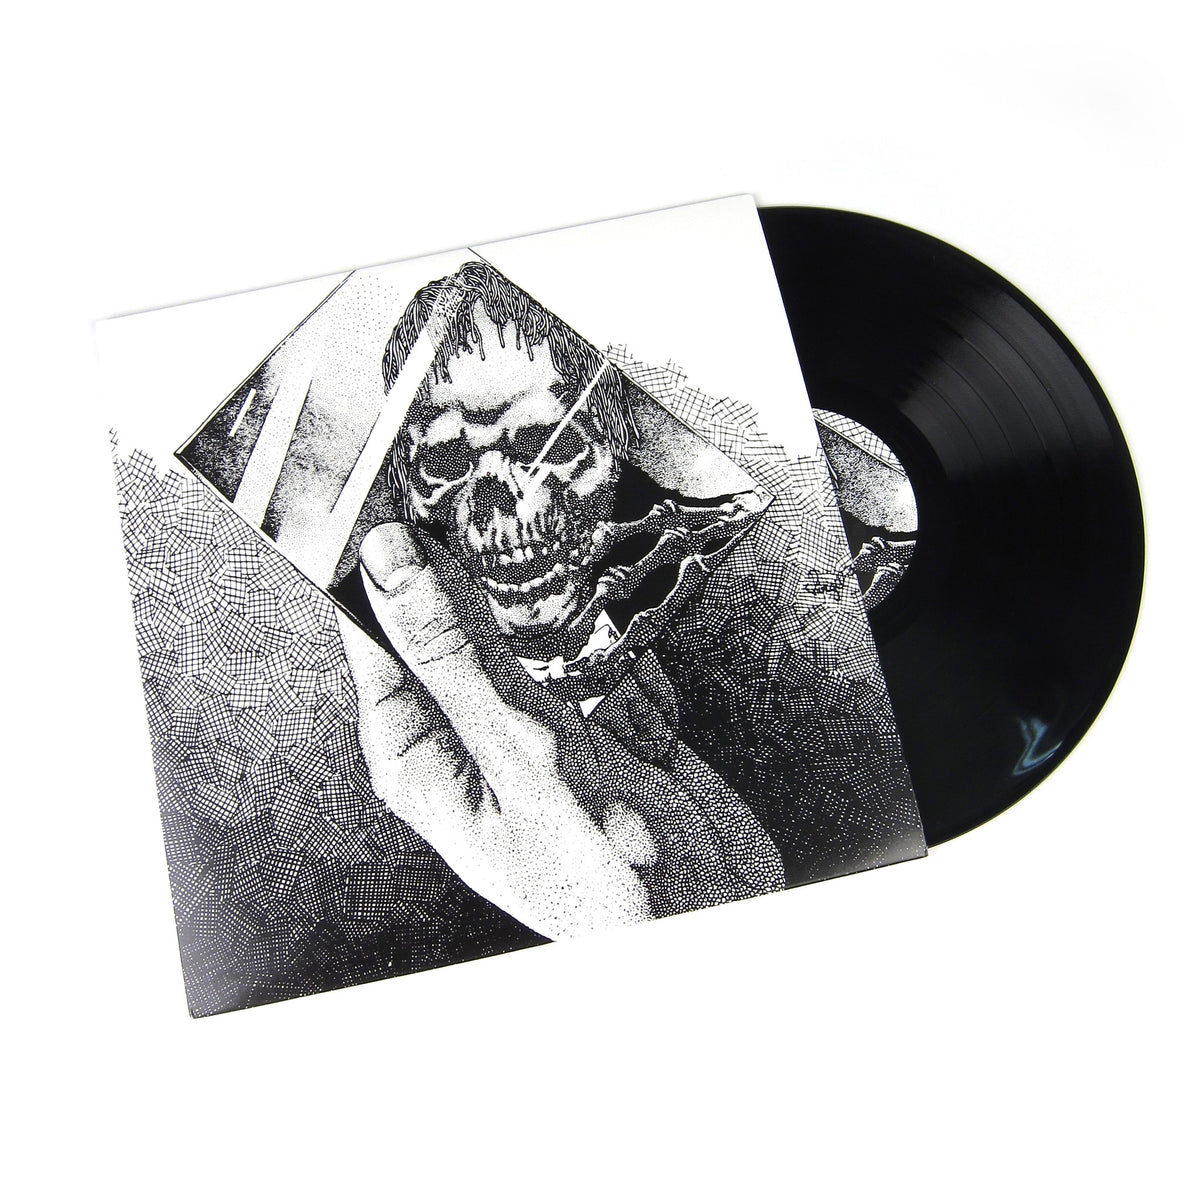 Oneohtrix Point Never: Replica Vinyl LP